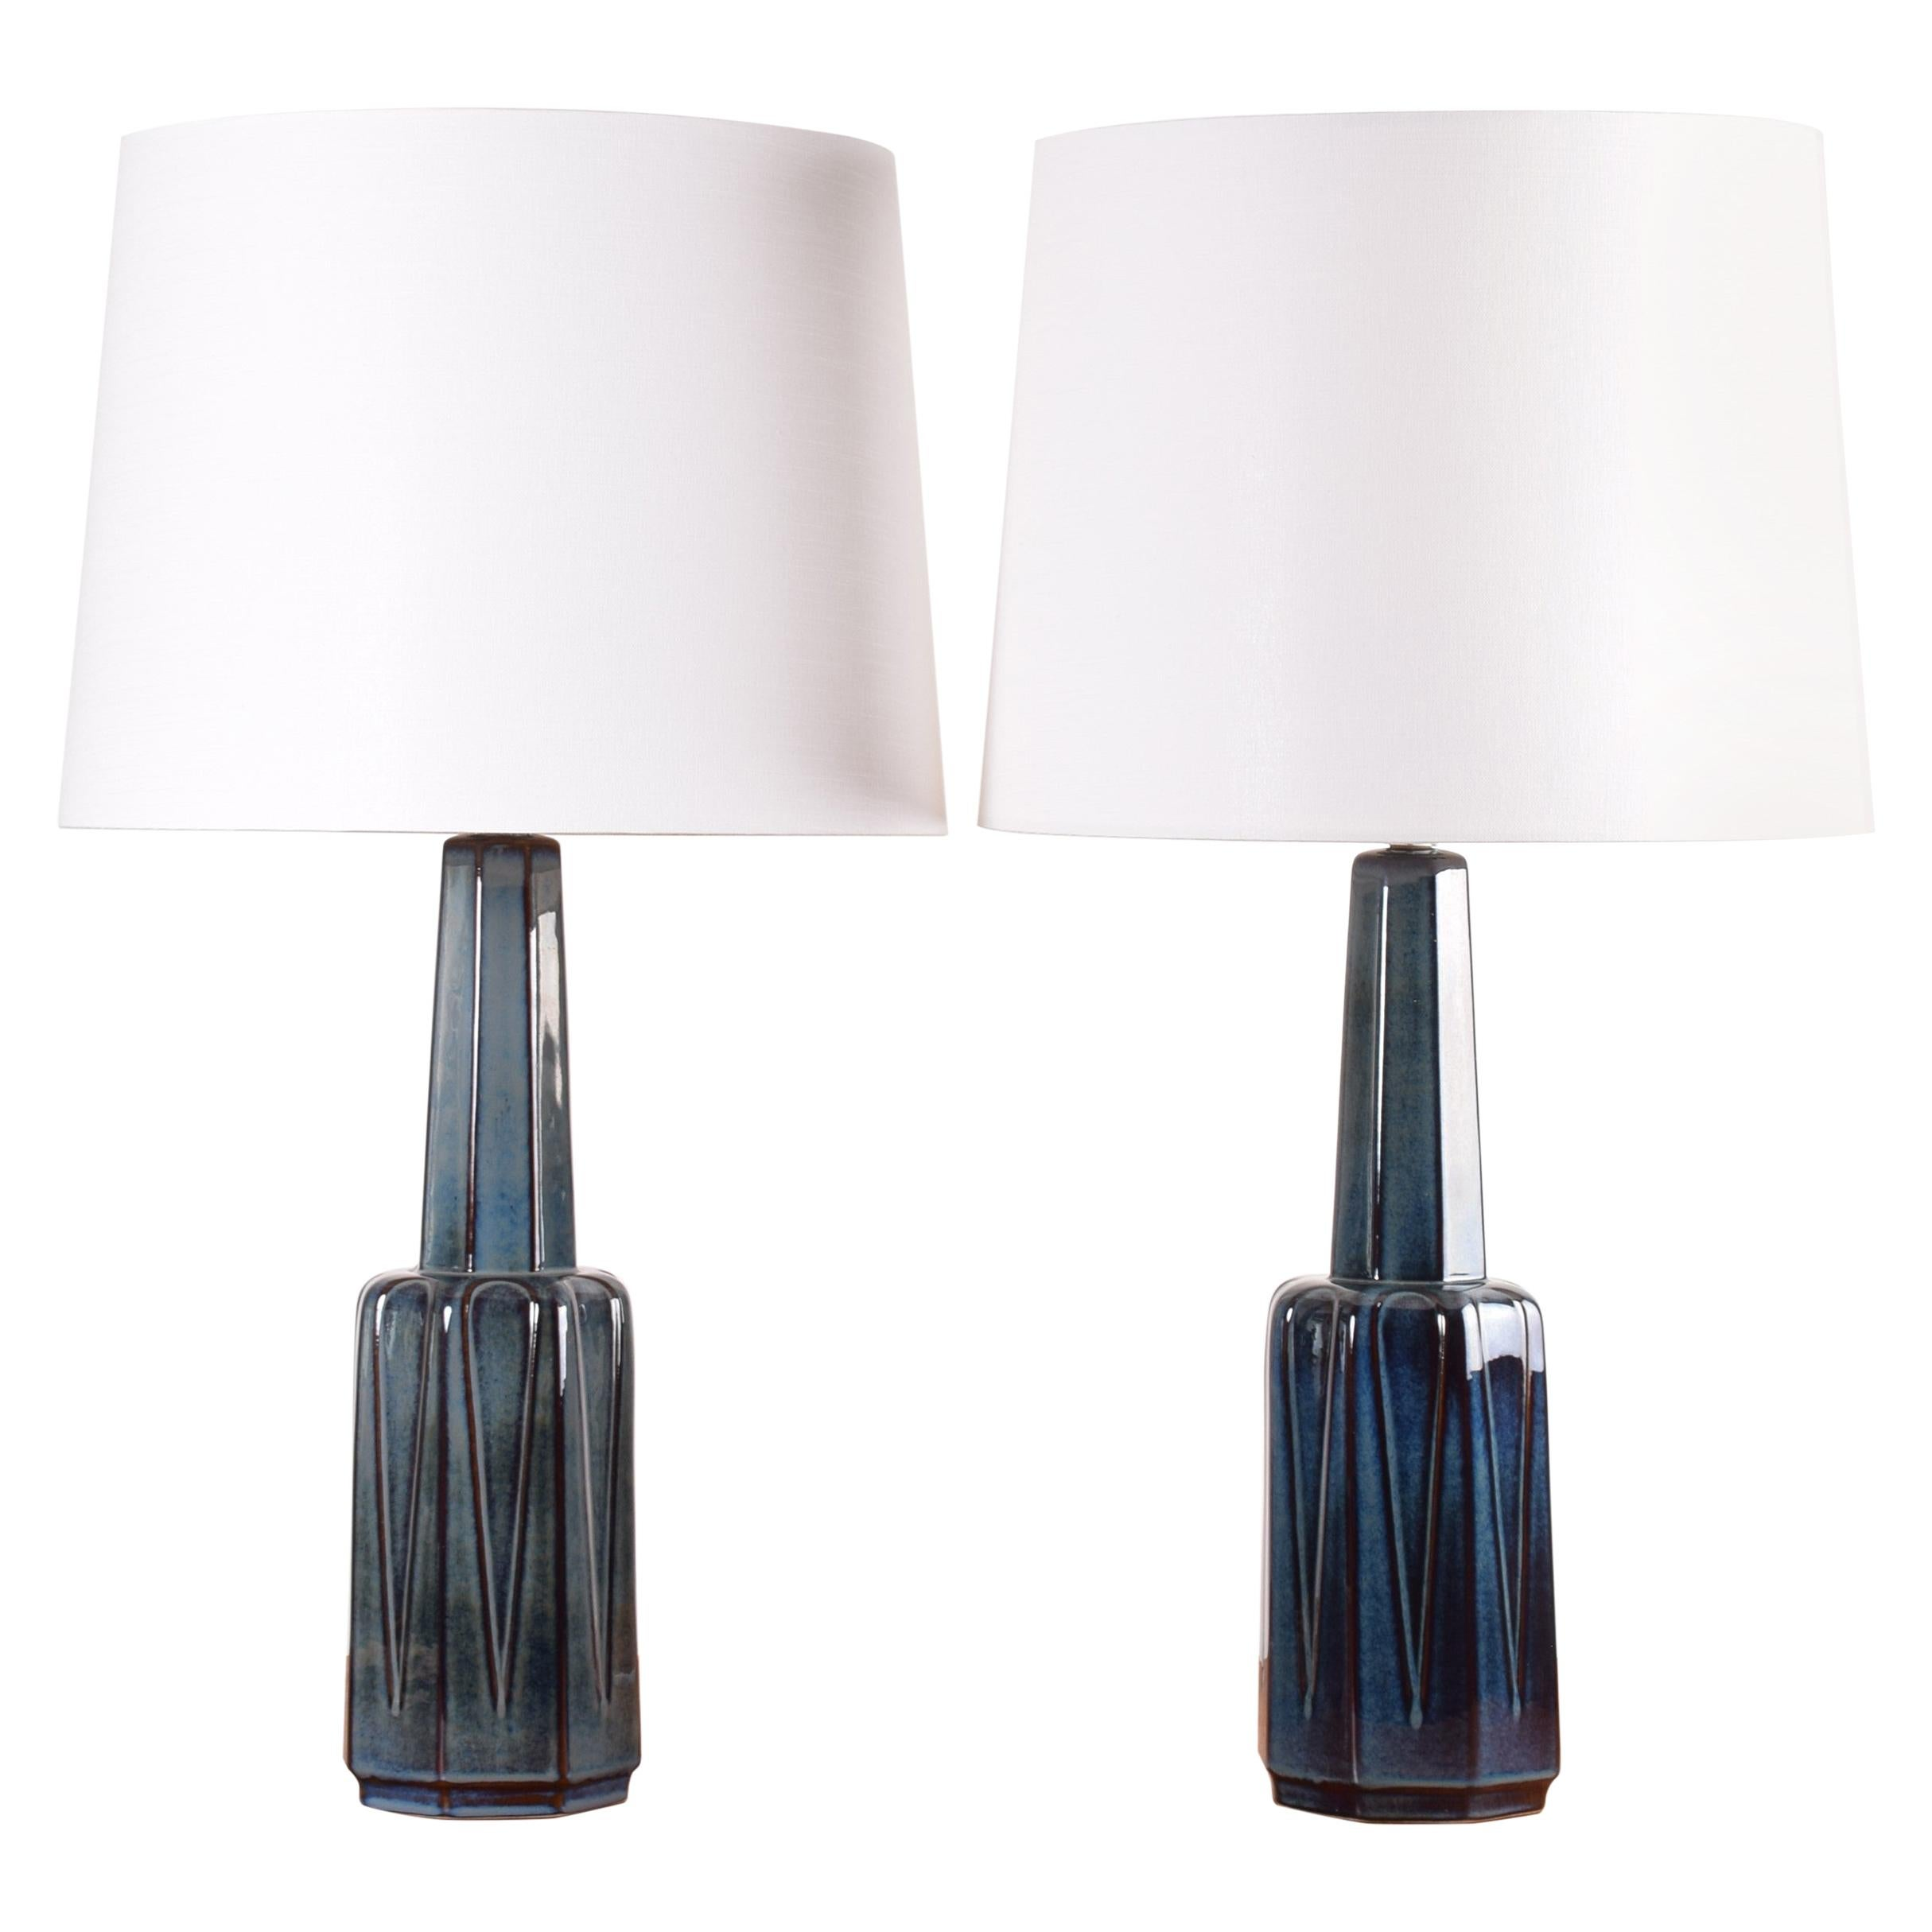 Pair of Danish Søholm Tall Blue Ceramic Table Lamps Einar Johansen Attributed